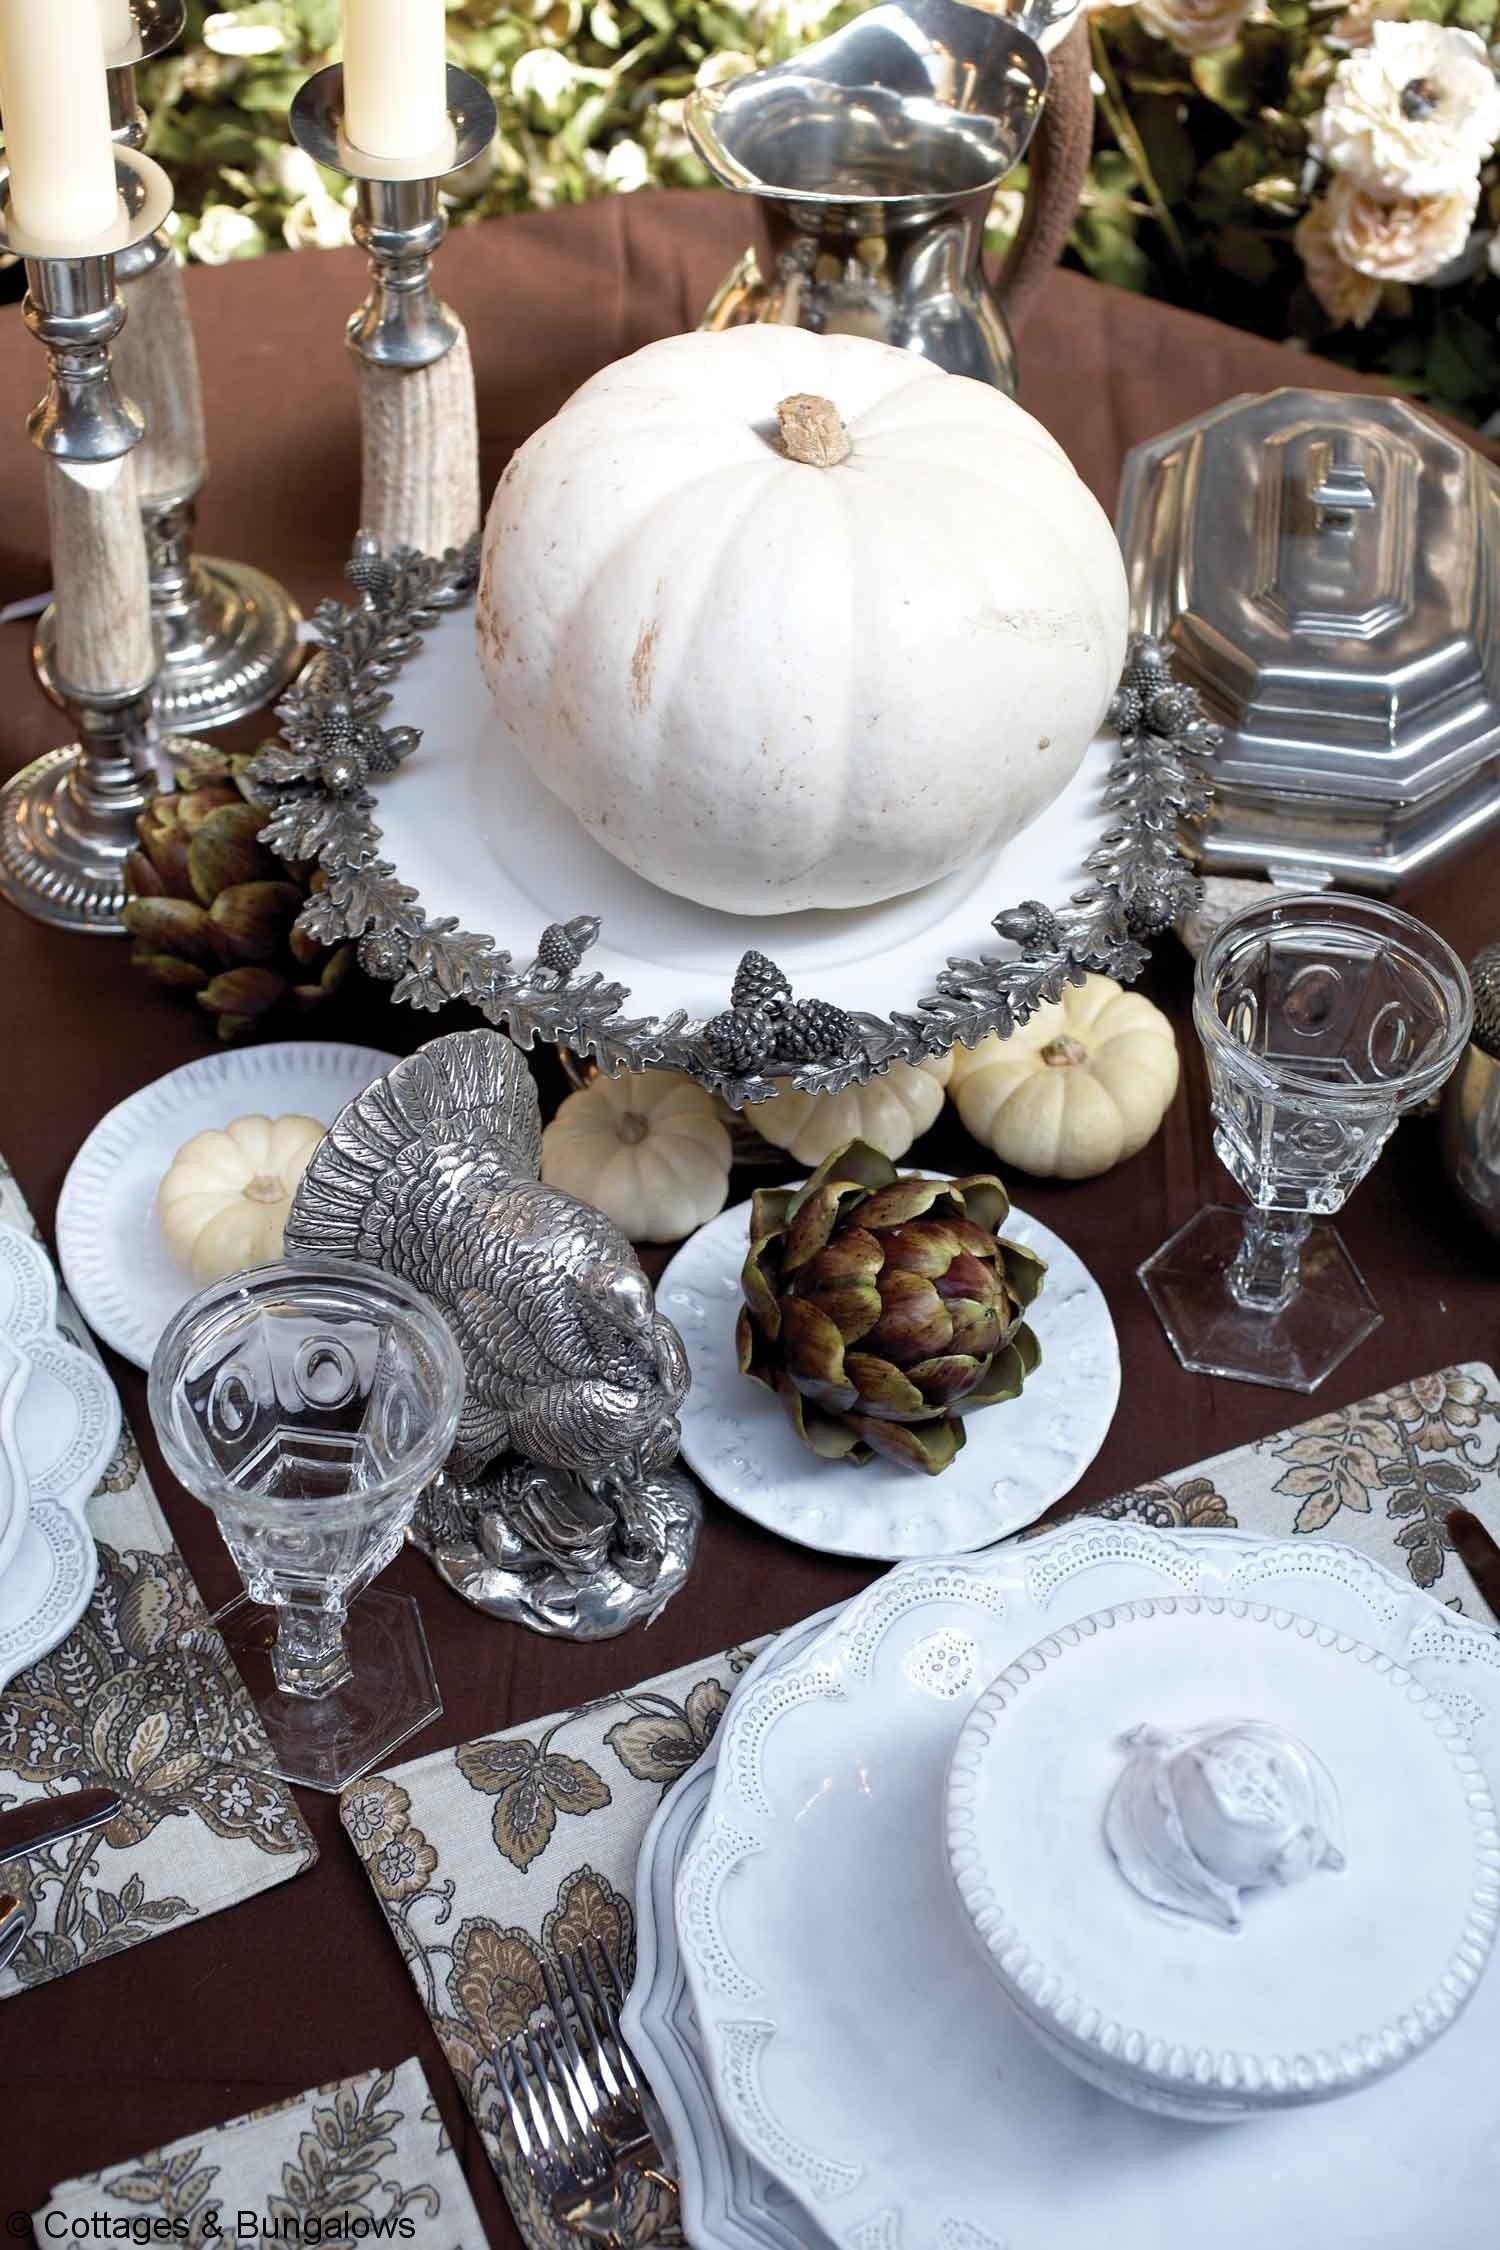 Harvest Seasonal Elements Your Home Cottage Style